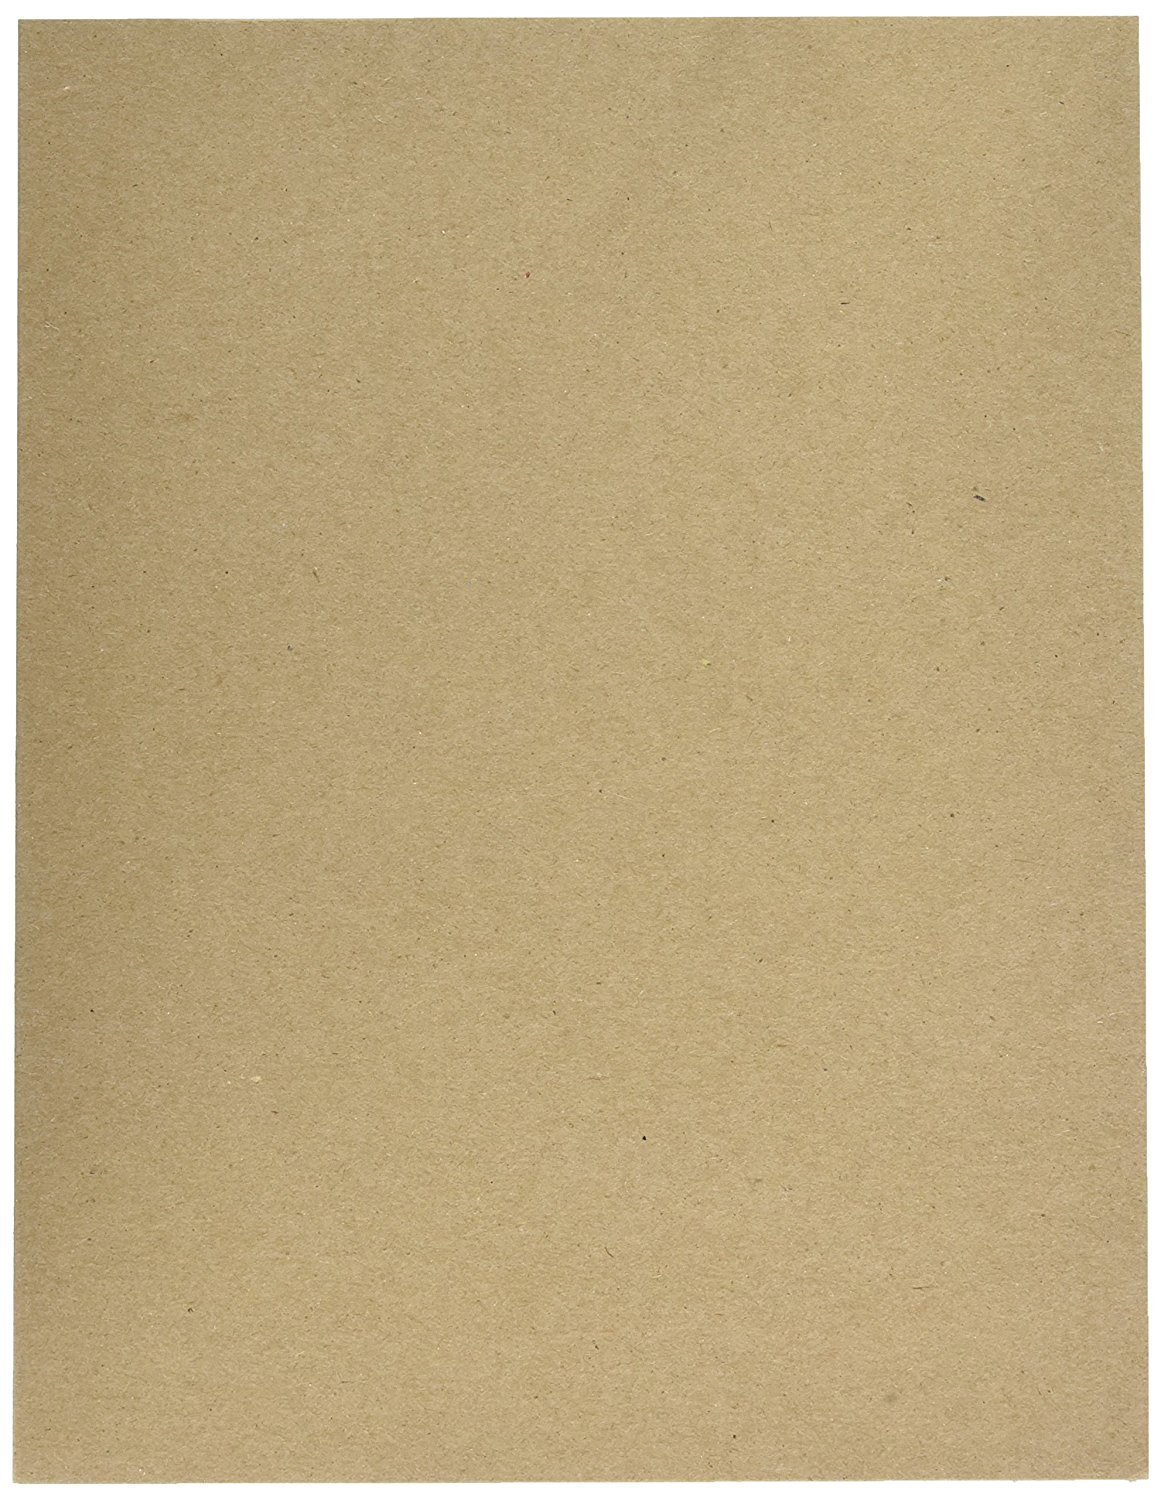 Cardboard Medium Weight Chipboard Sheets - 50 Chipboards Per Pack. (12 X 18 Inches)